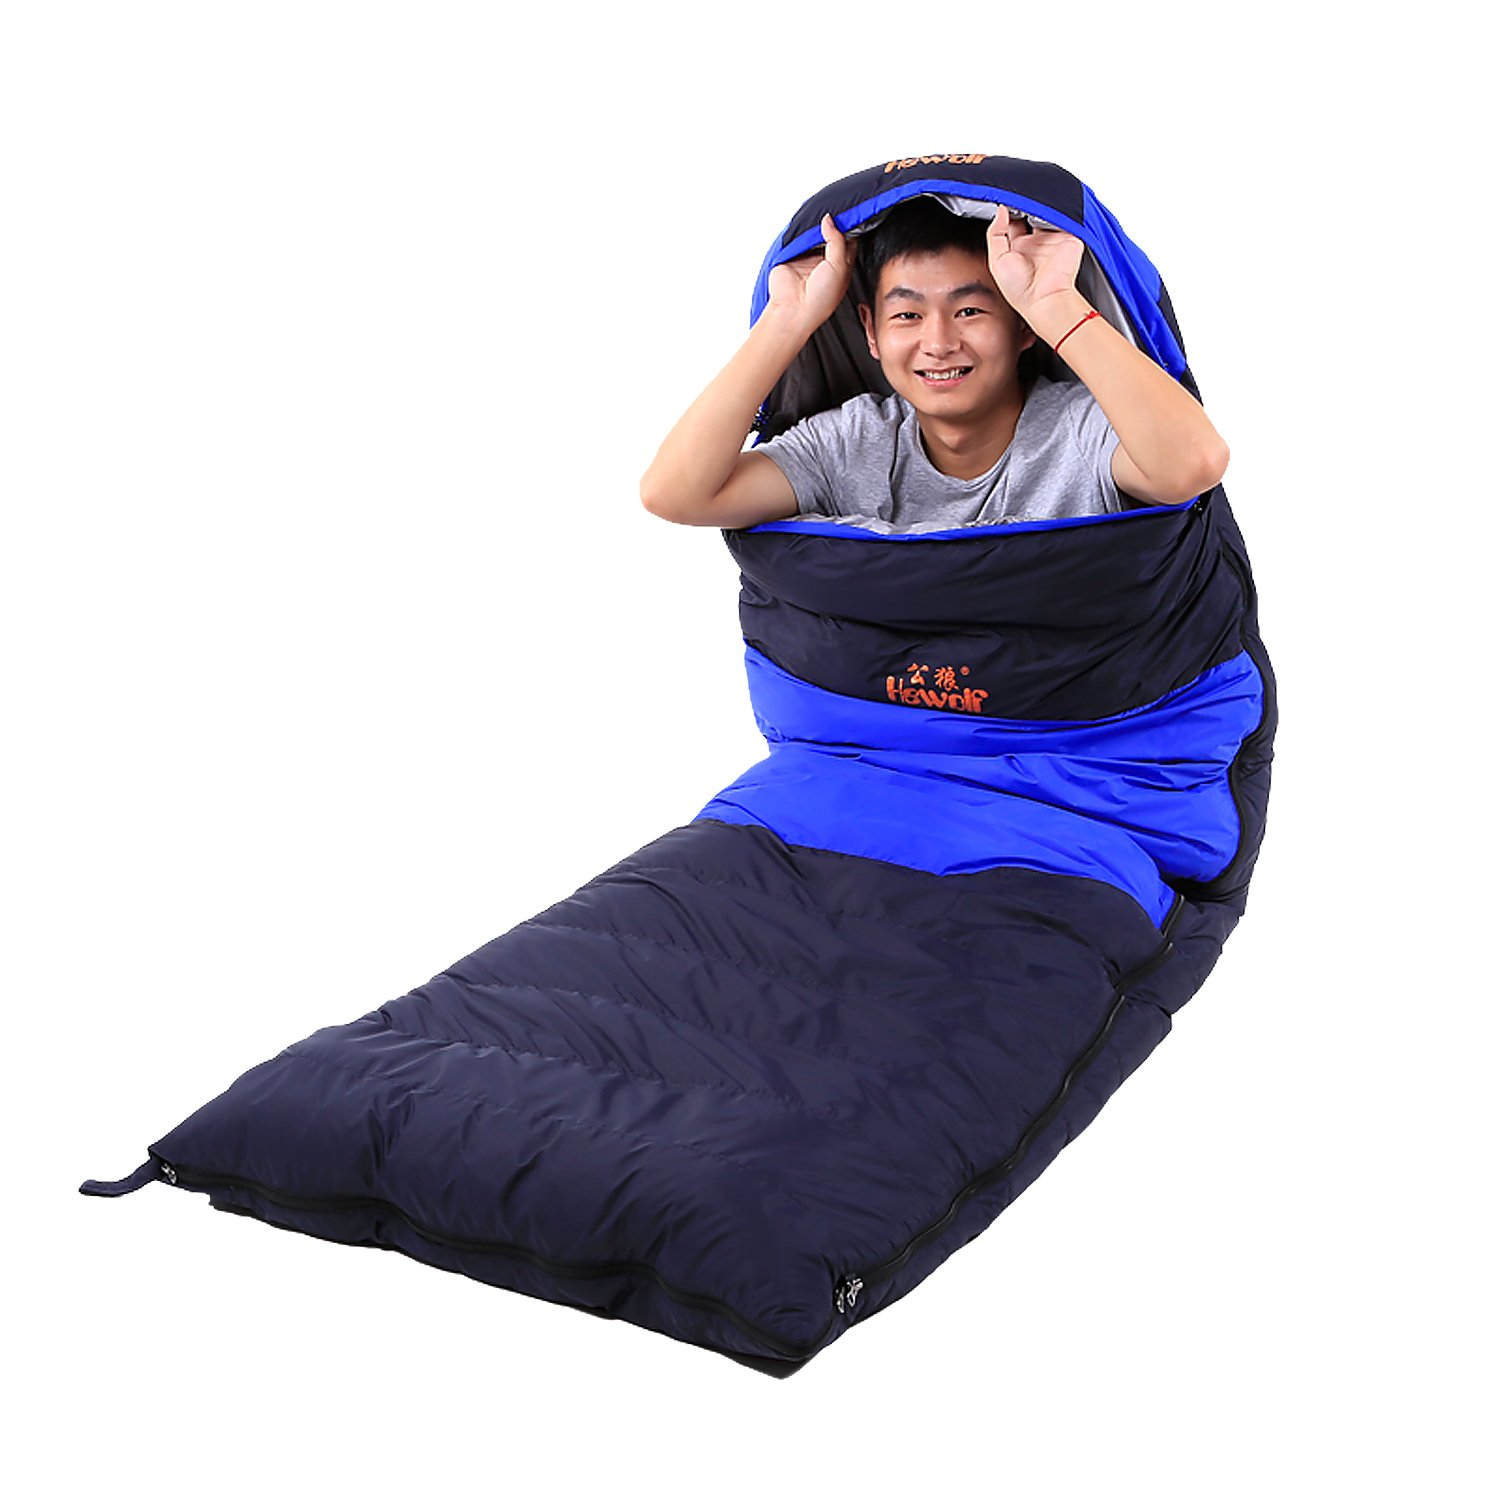 Hewolf Extreme 4 SeasonsWinter Ultra Light Sleeping Bag Duck Down for Adults Camping (blue, Duck Down1000g (total weight 1800g); -10~5 degree) by Hewolf